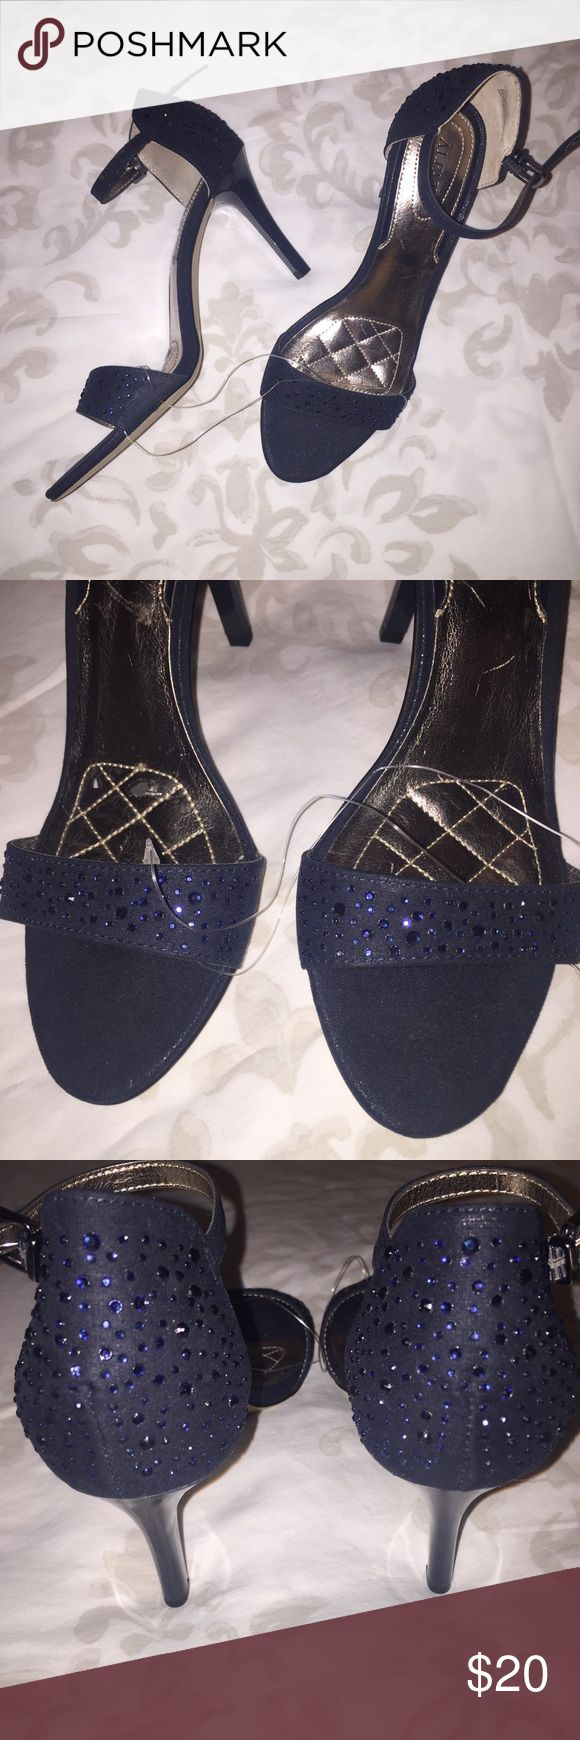 Blue gem heels Never worn, right shoe does have some damange on sole but its not noticeable while wearing. All gems seem to be intact, there are no major parchy areas. Heel is about 3 inches Alfani Shoes Heels